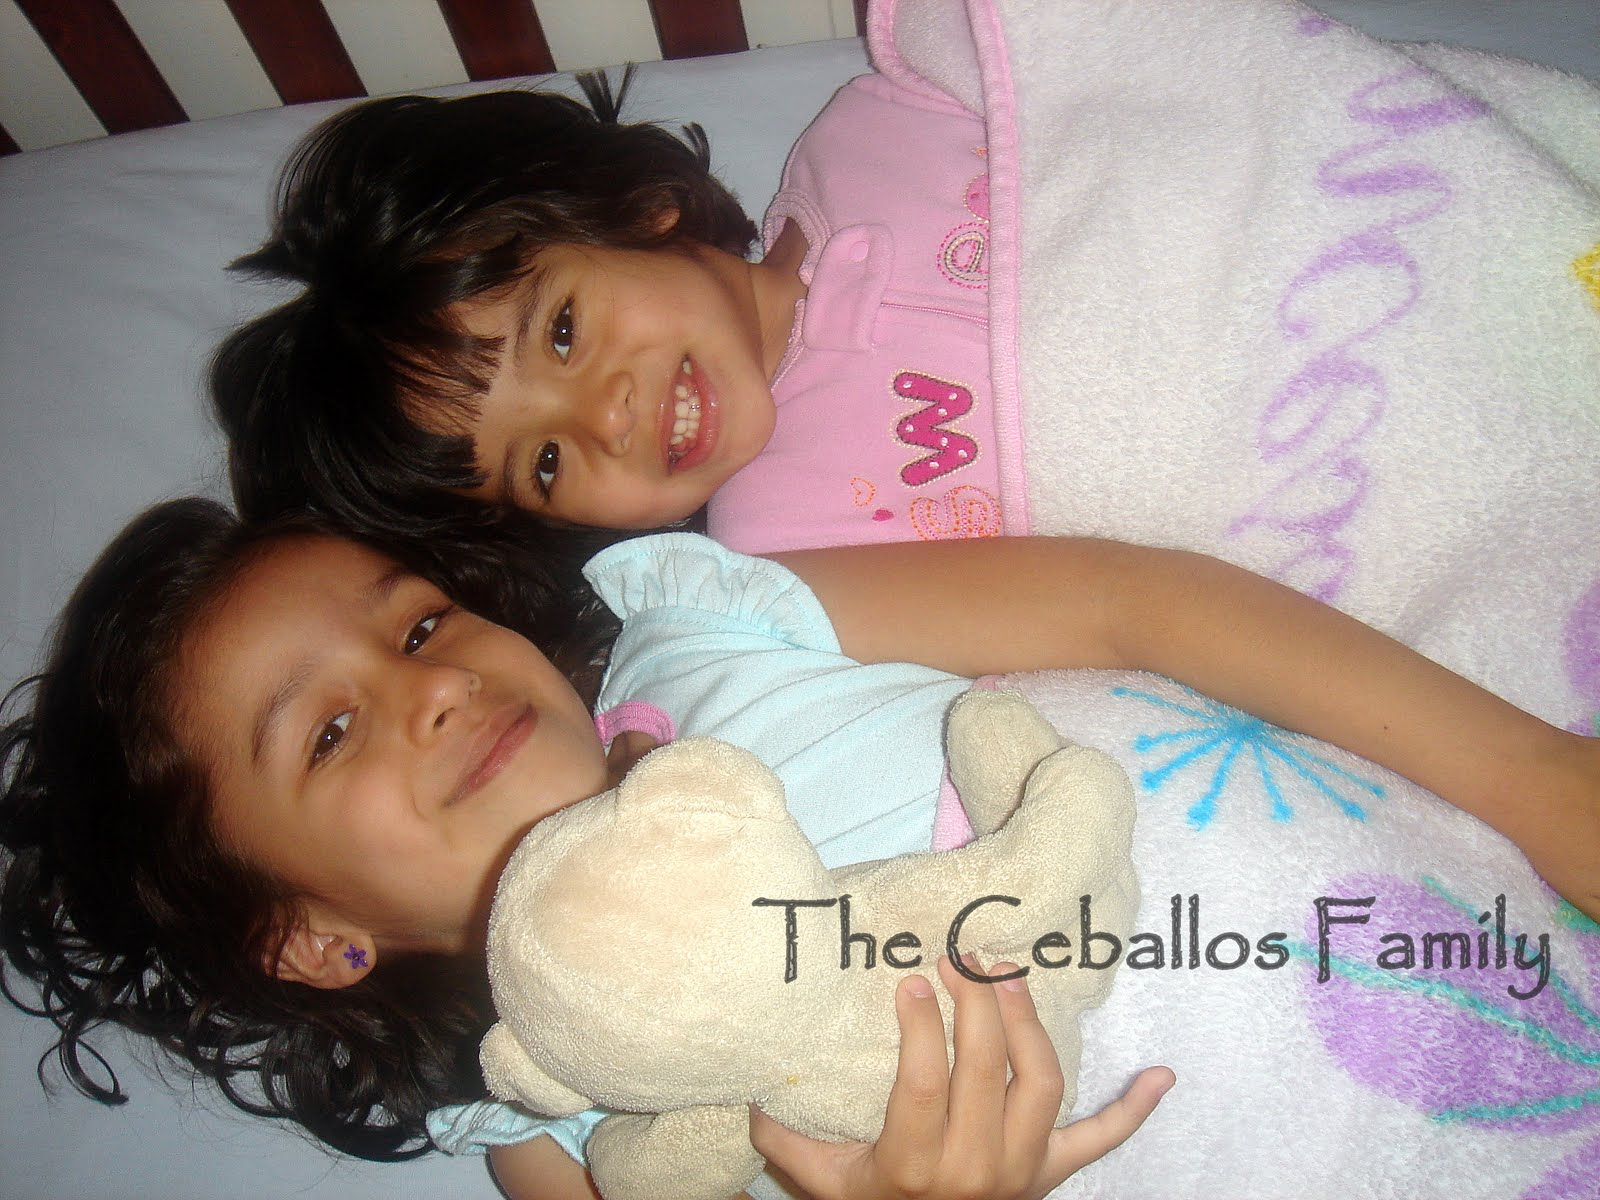 The Ceballos Family Good Night Sister